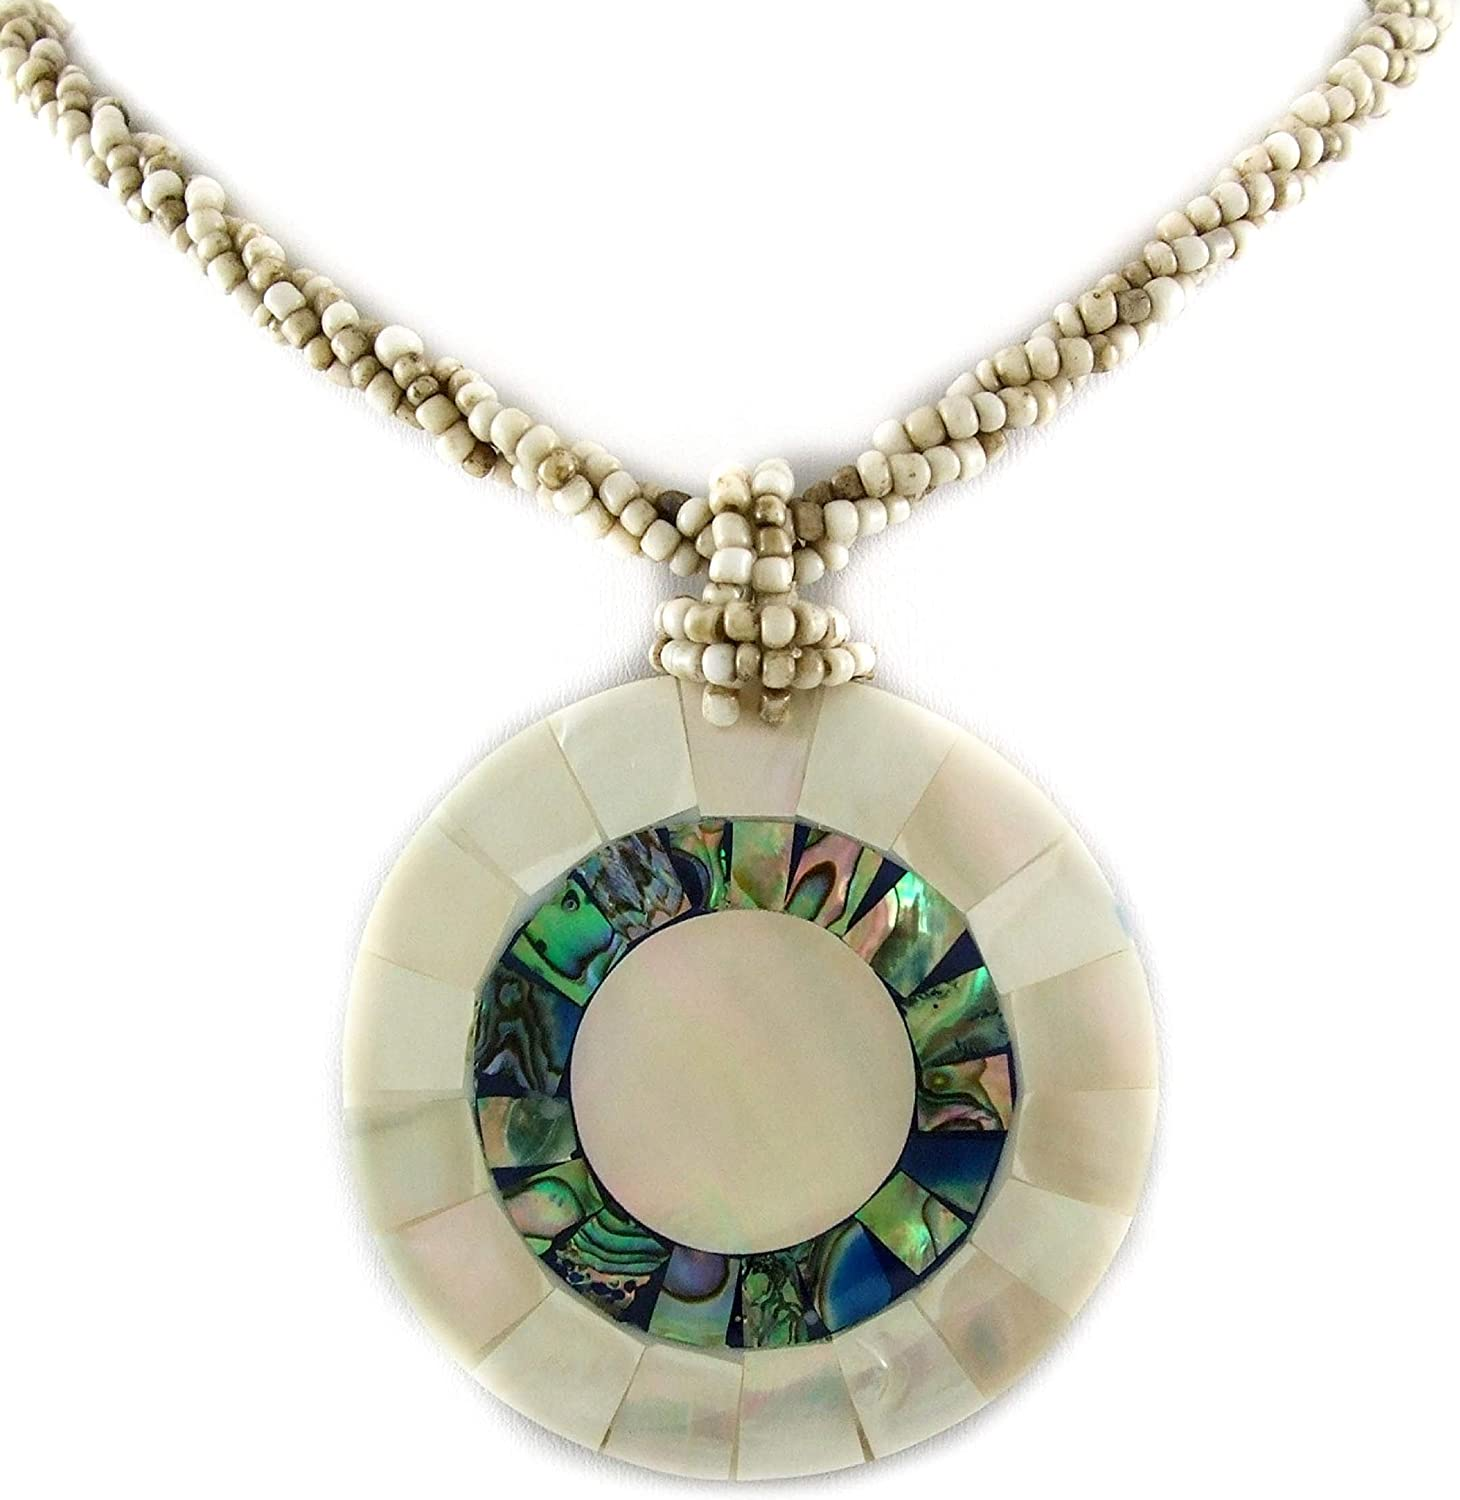 Natural Abalone Shell, Mother of Pearl Pendant 19 Inches Beads necklace Handmade Jewelry AA192